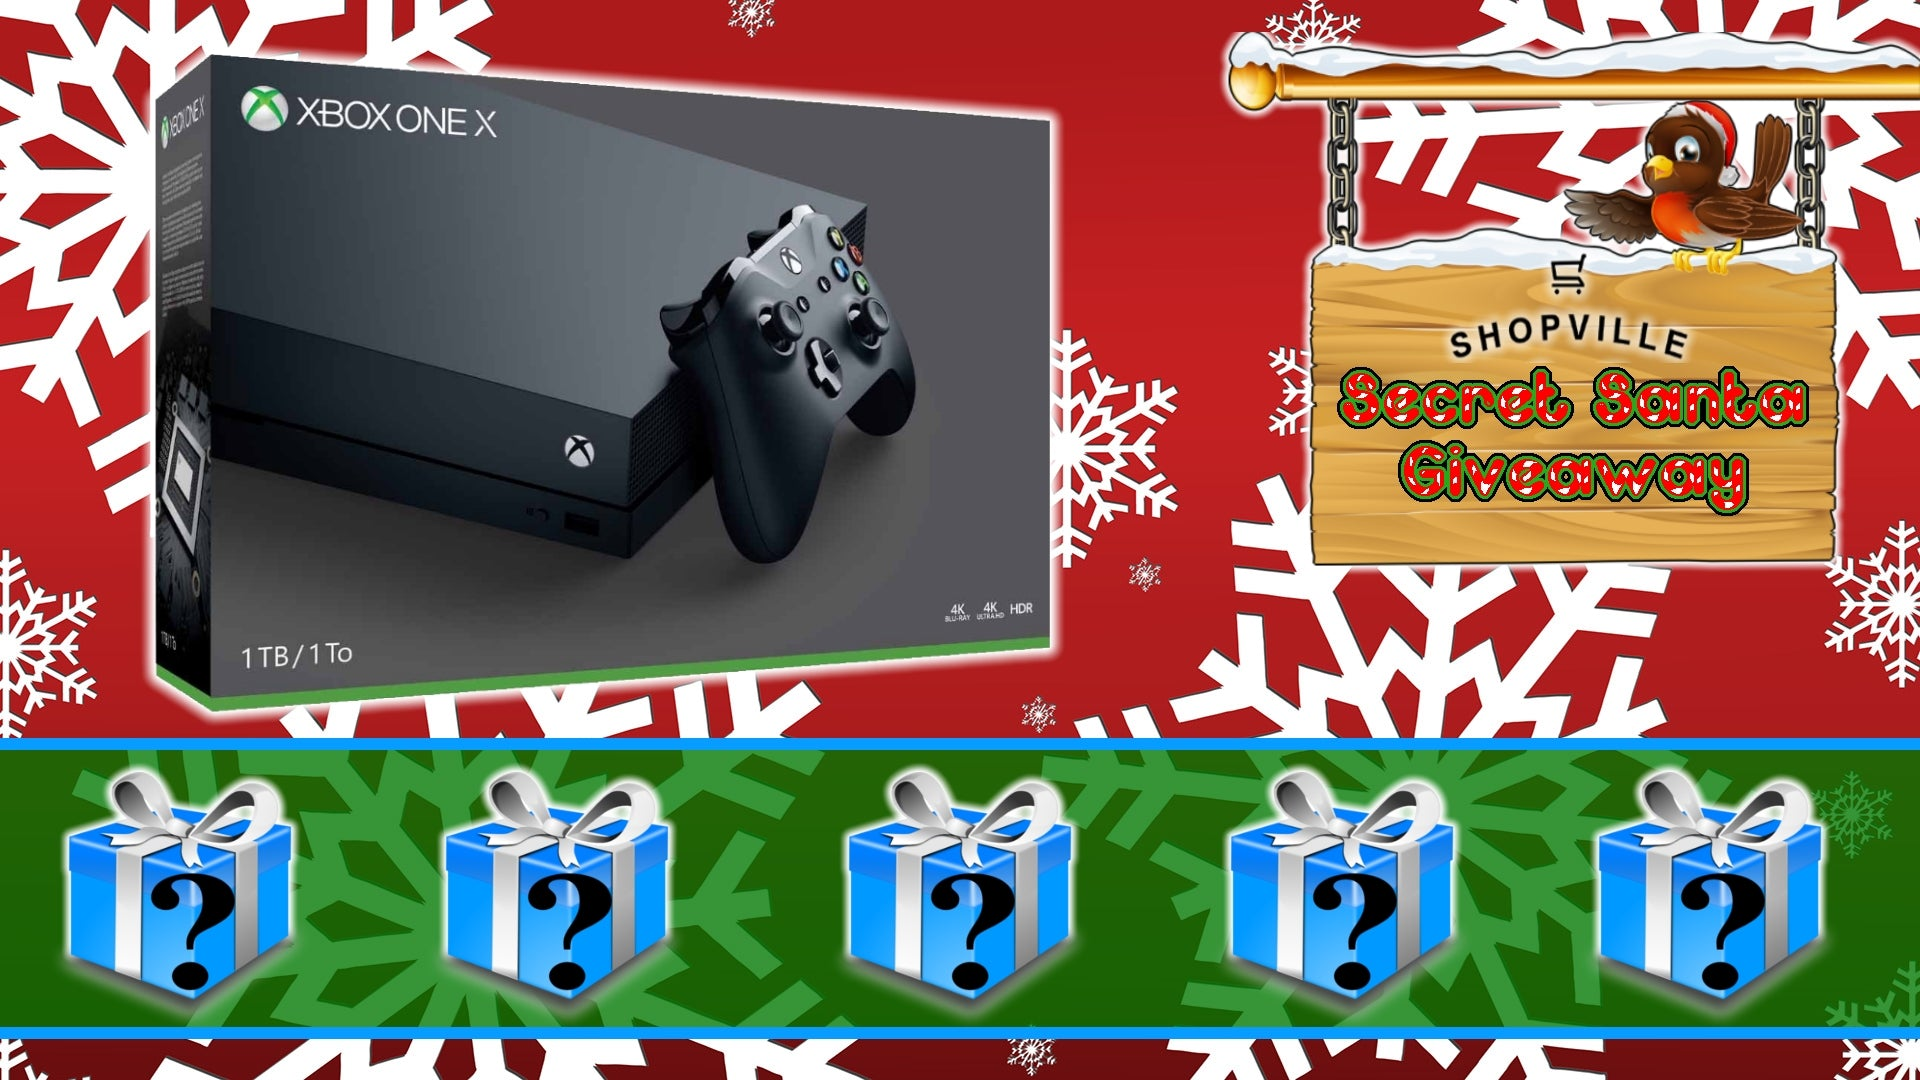 Xbox One X + Secret Santa Giveaway